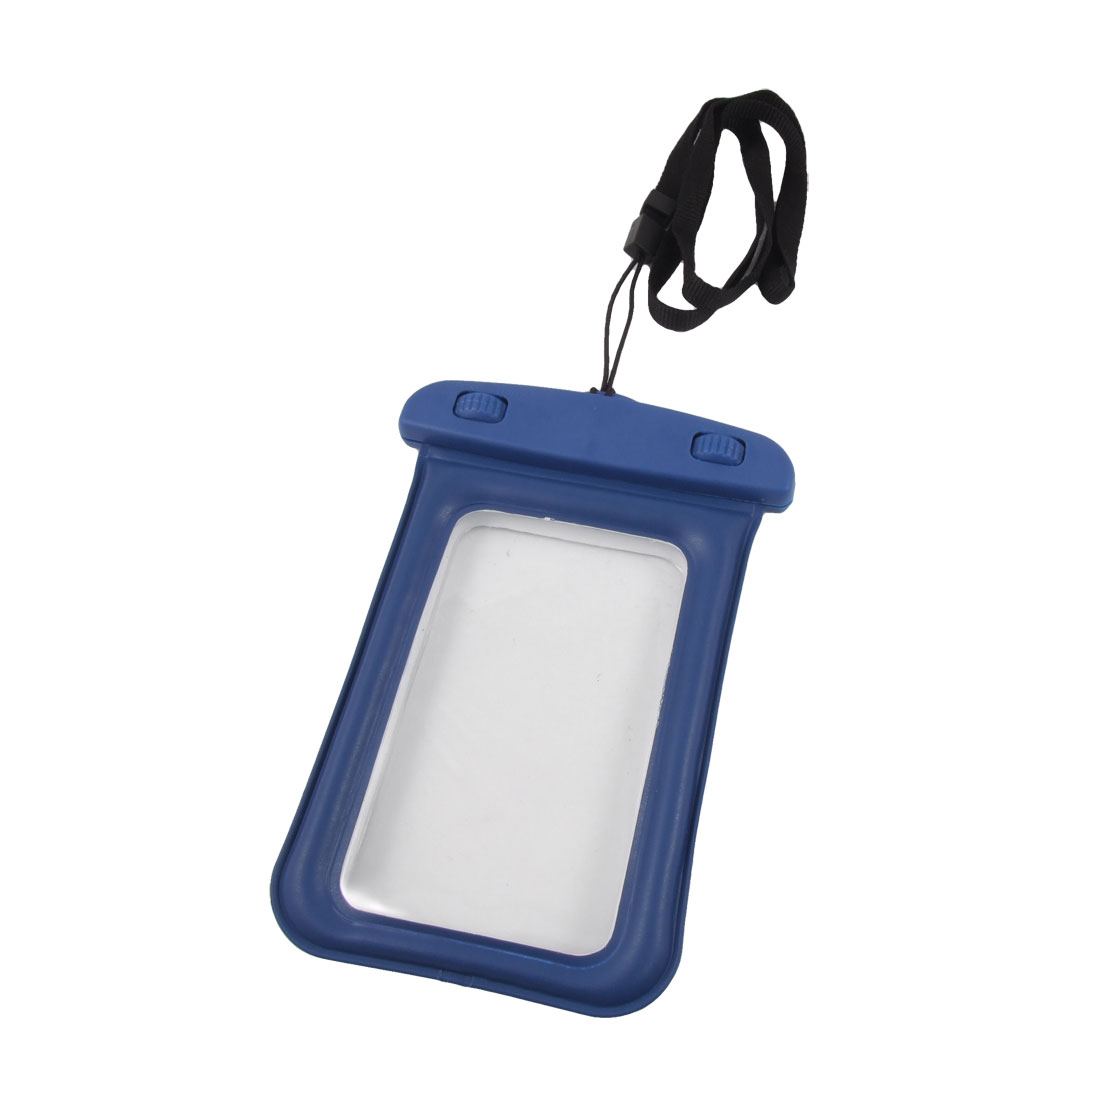 Cell Phone Water Resistant Bag Pouch Blue for iPhone 4 4G 3G